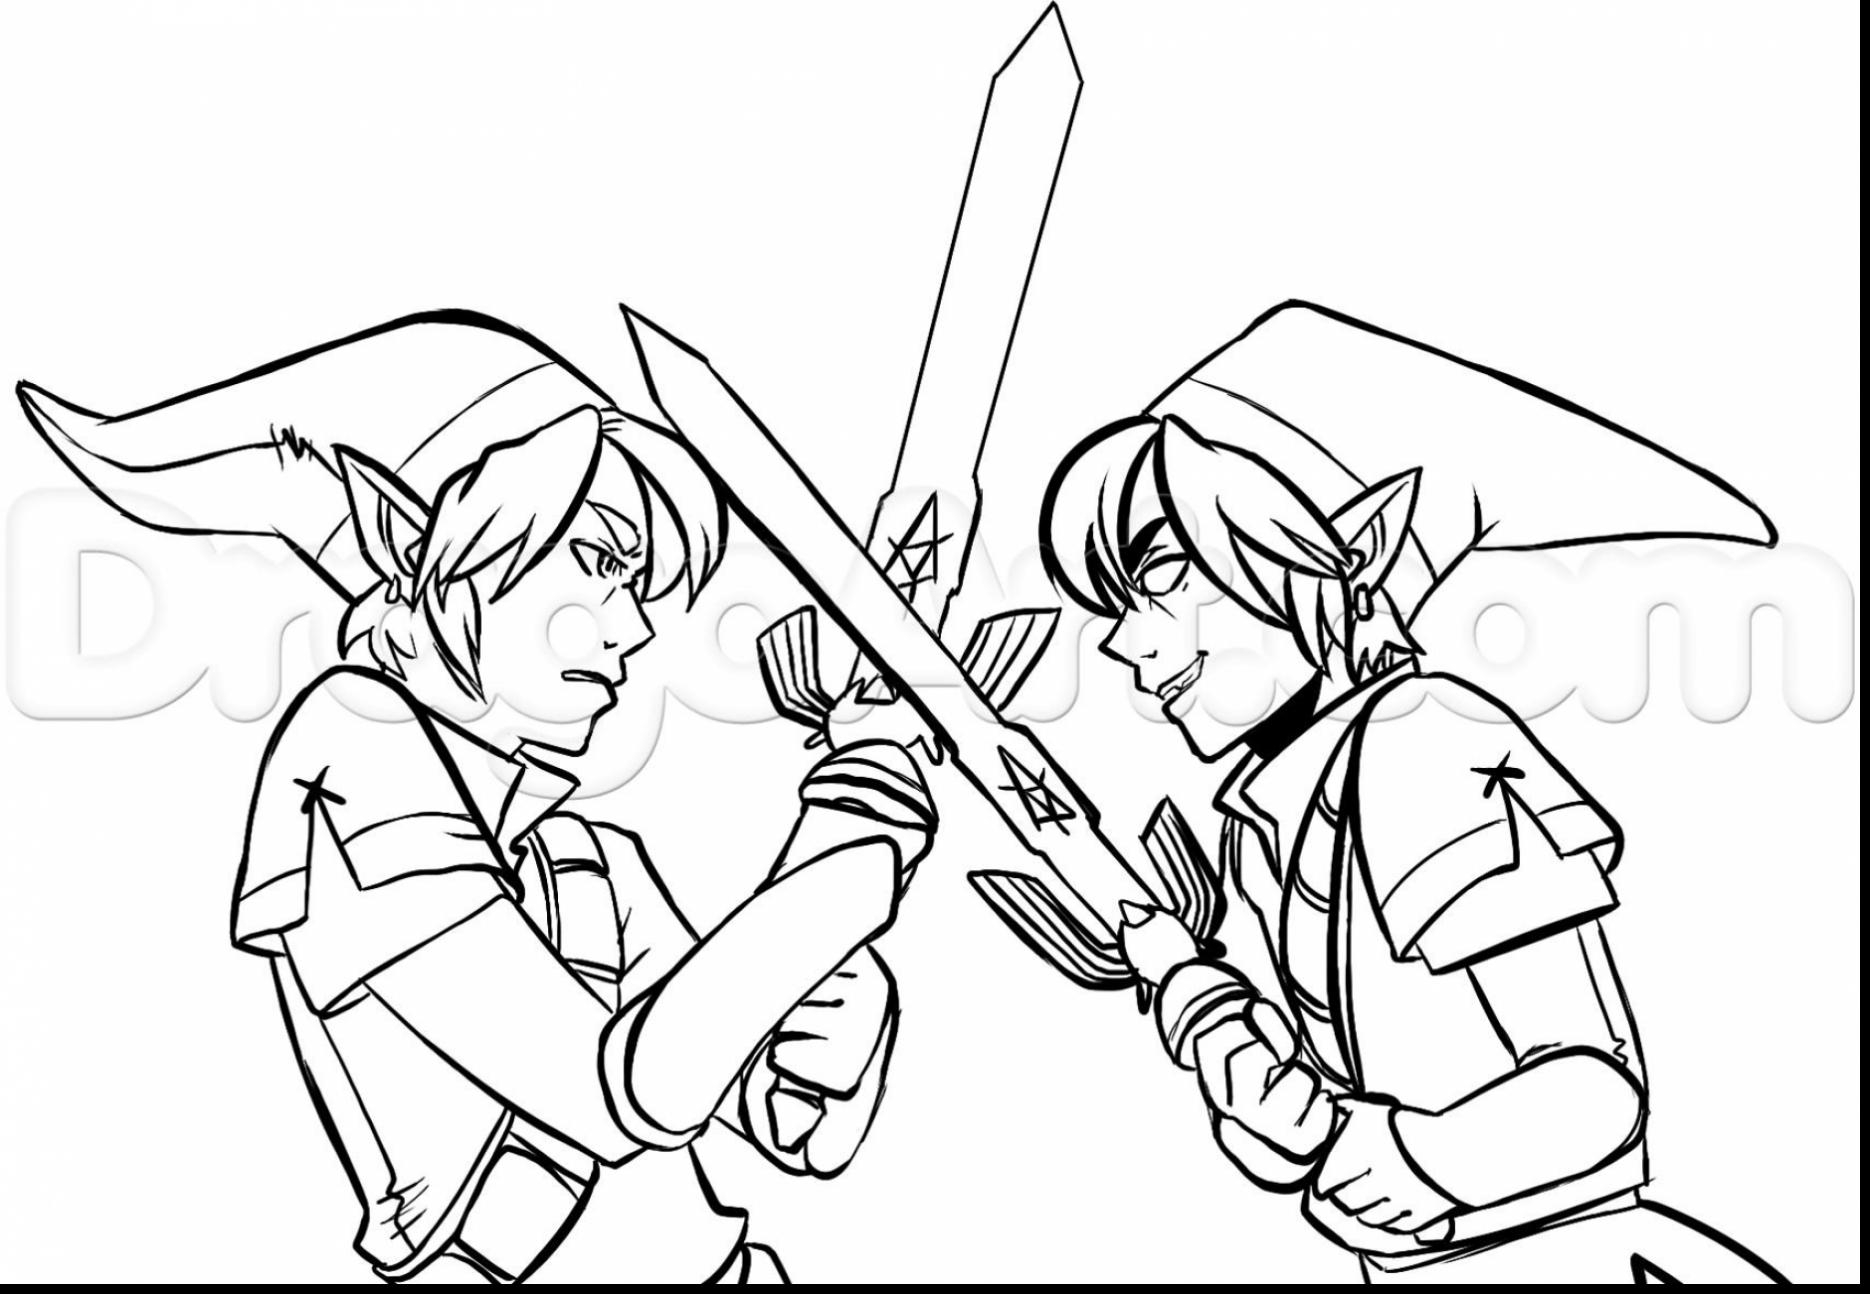 1870x1294 Best Of Zelda Twilight Princess Coloring Pages For Adults Gallery